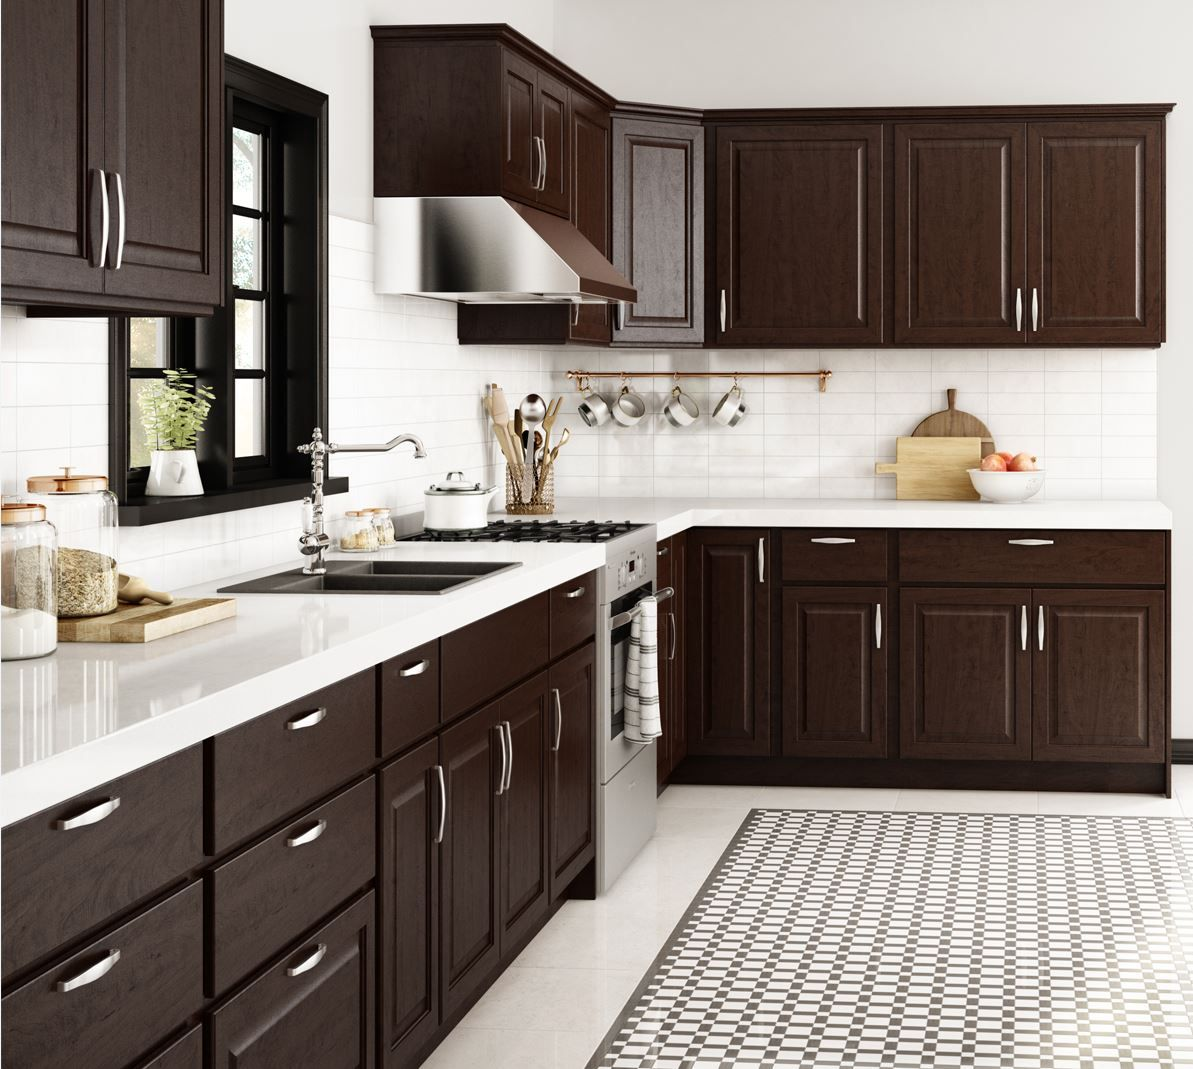 Shop Our Kitchen Cabinets Department To Customize Your Madison Base Cabinets In Java Today At T Kitchen Room Design Kitchen Design Color Kitchen Cabinet Design